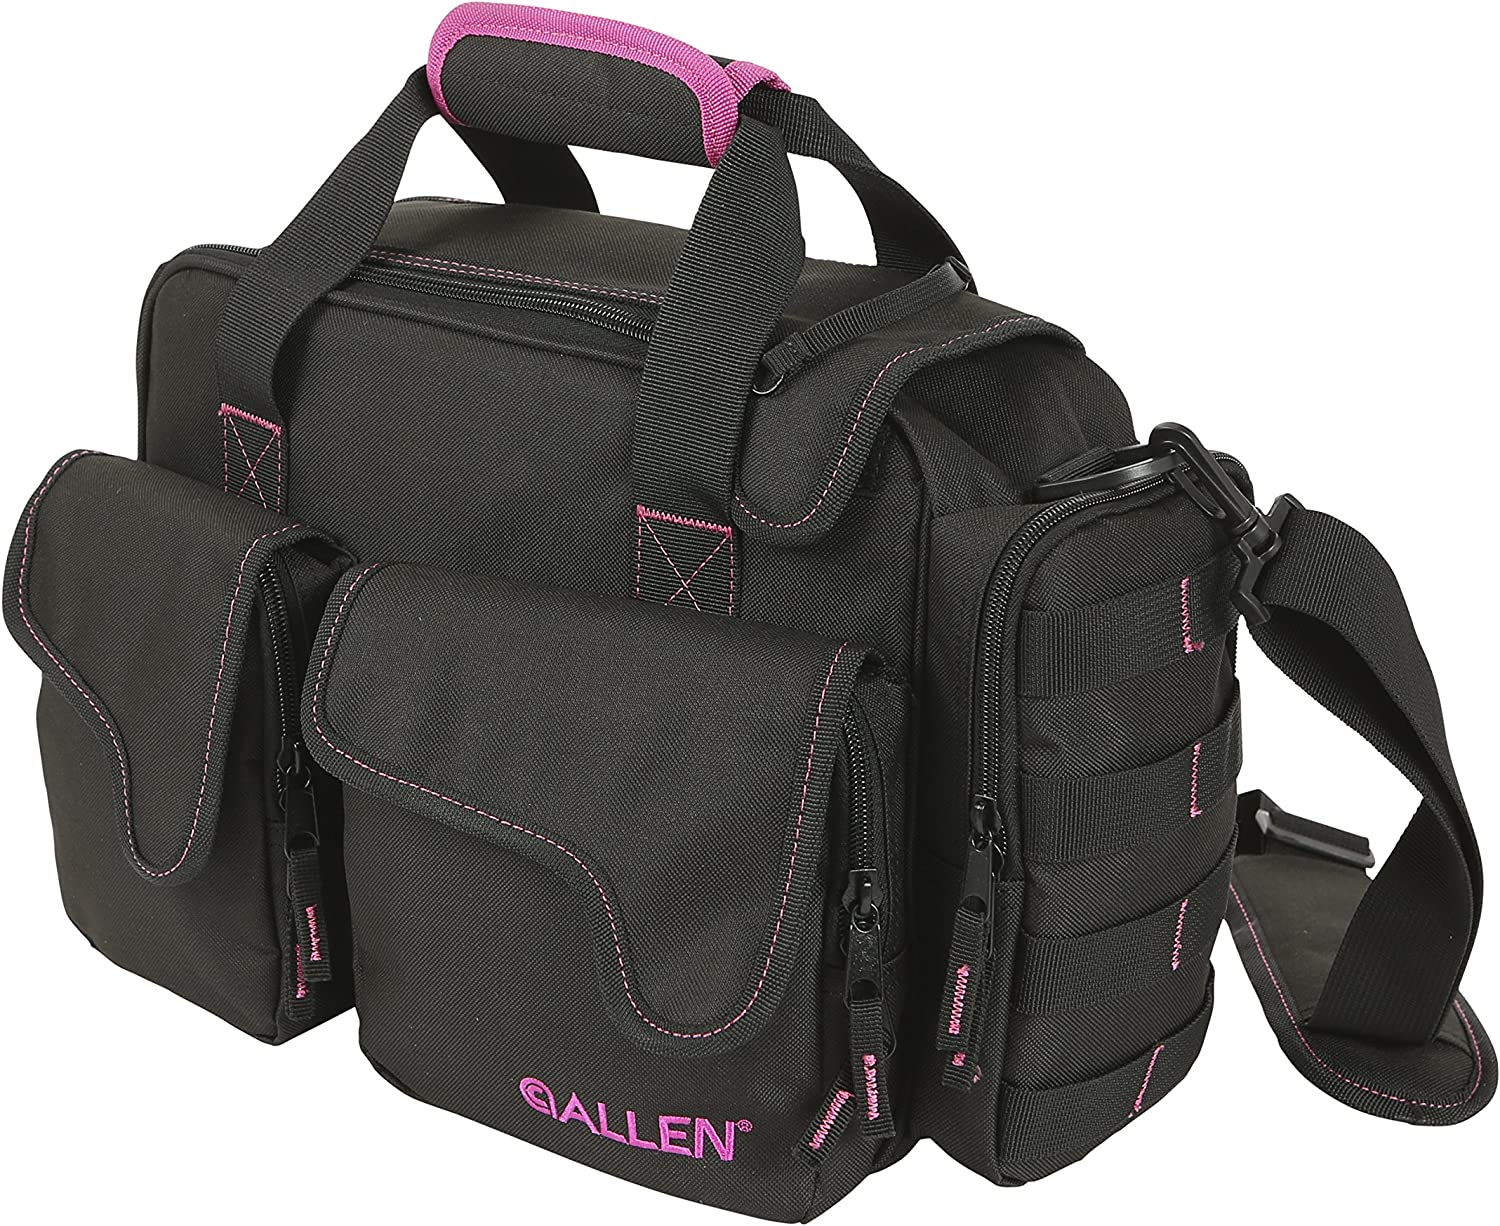 Allen Compact Shooting Range Bag for Women, This Range Bag Comes in Black/Pink